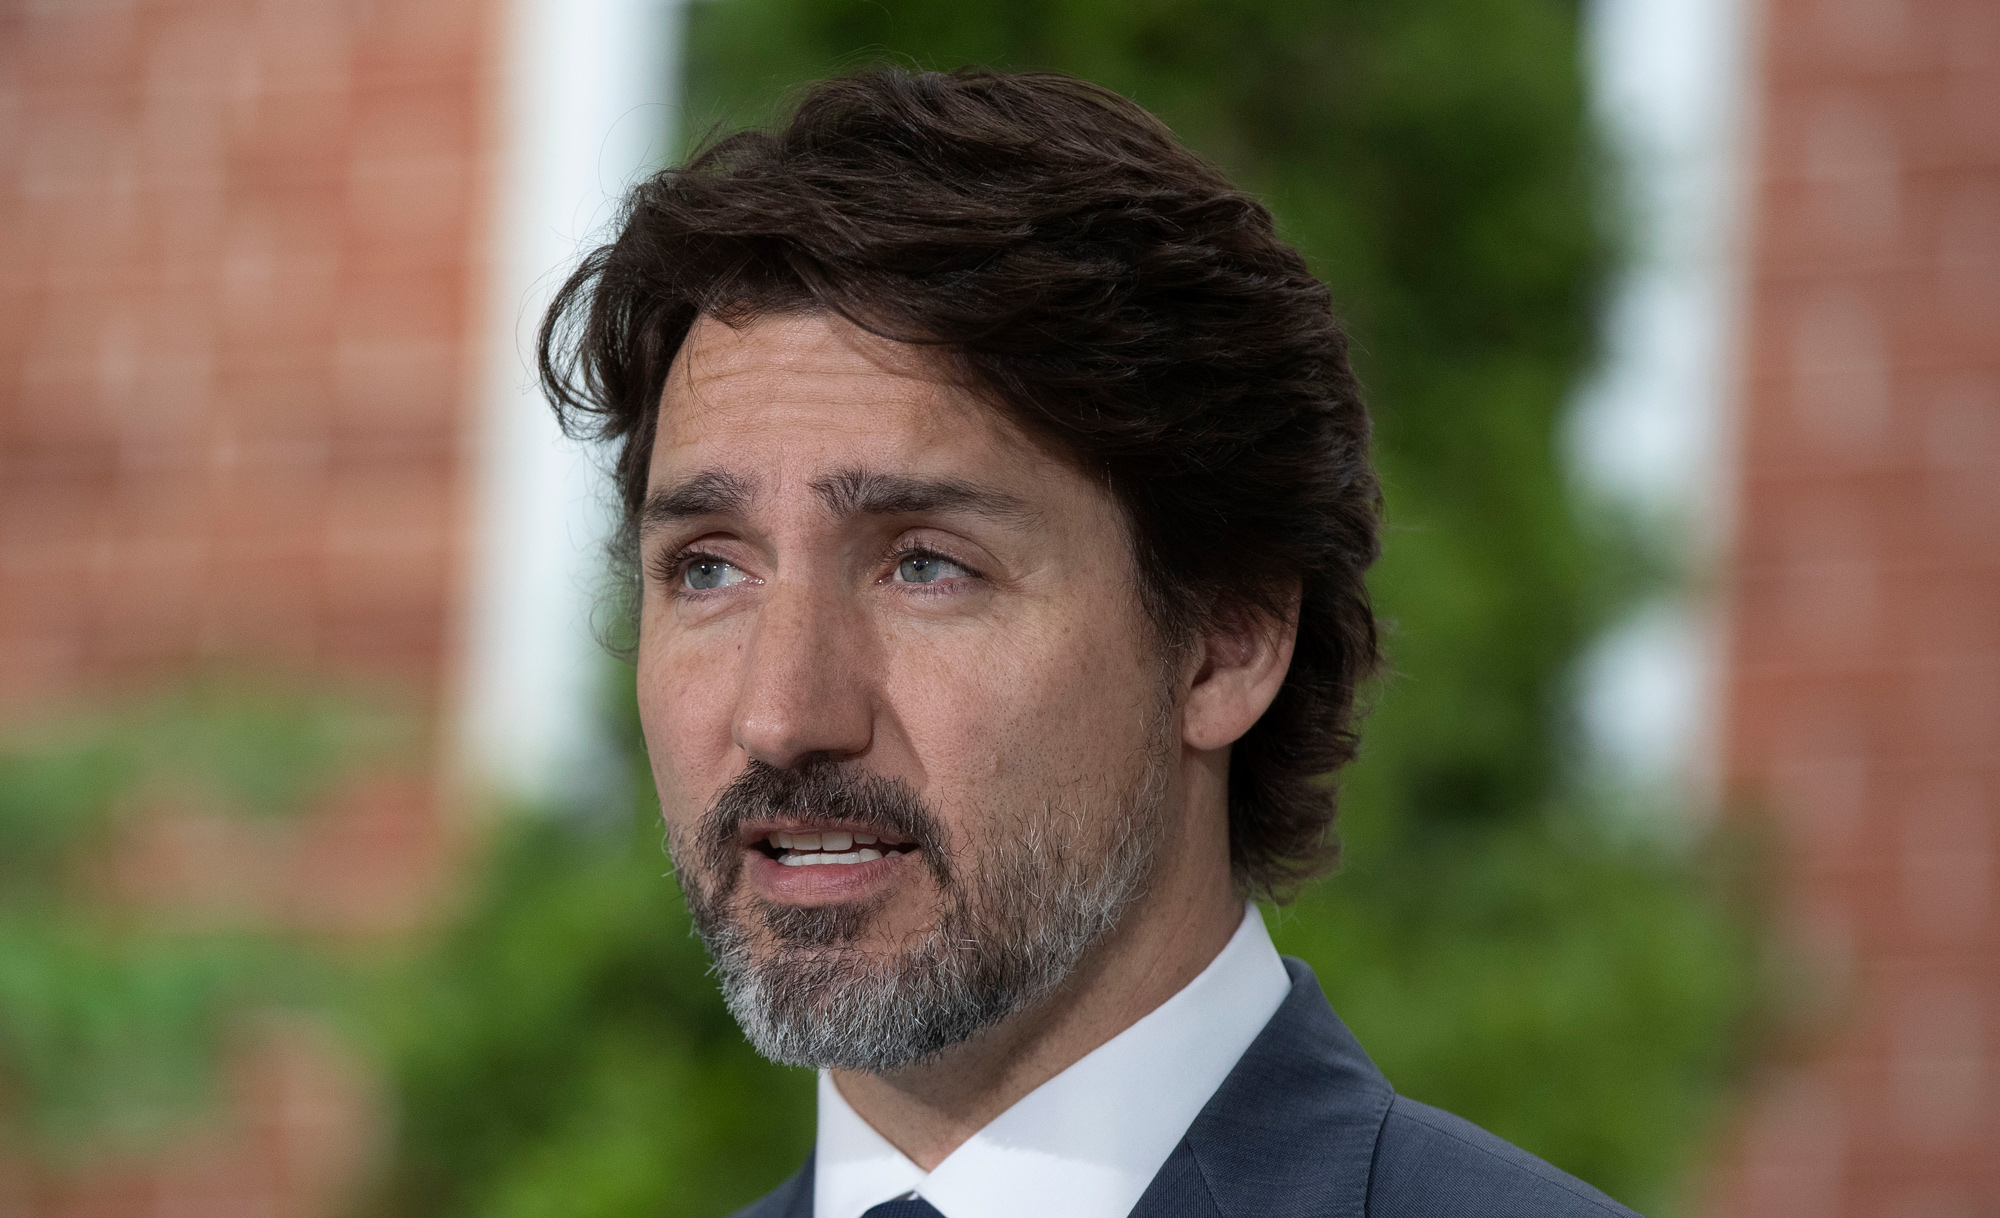 Canadian Prime Minister Justin Trudeau speaks during his daily coronavirus briefing at Rideau Cottage in Ottawa, Ontario, on June 25.